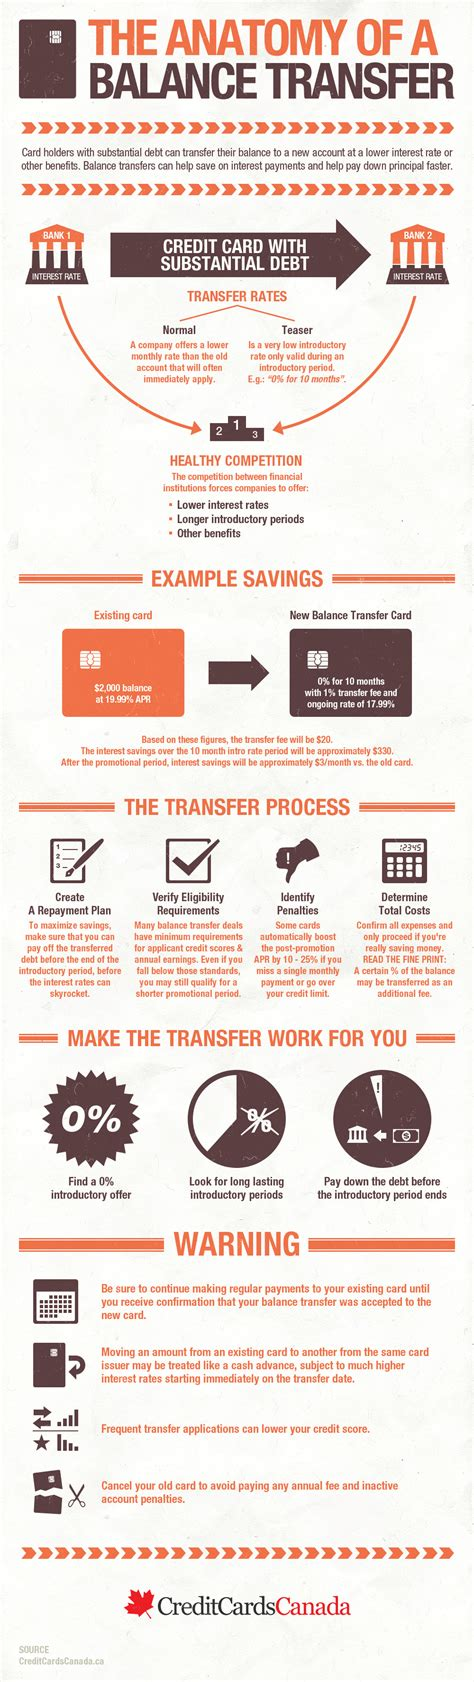 If you need help consolidating debt or getting a lower interest rate, you might consider a balance transfer. The Anatomy of a Balance Transfer | Infographic, Finance, Personal finance